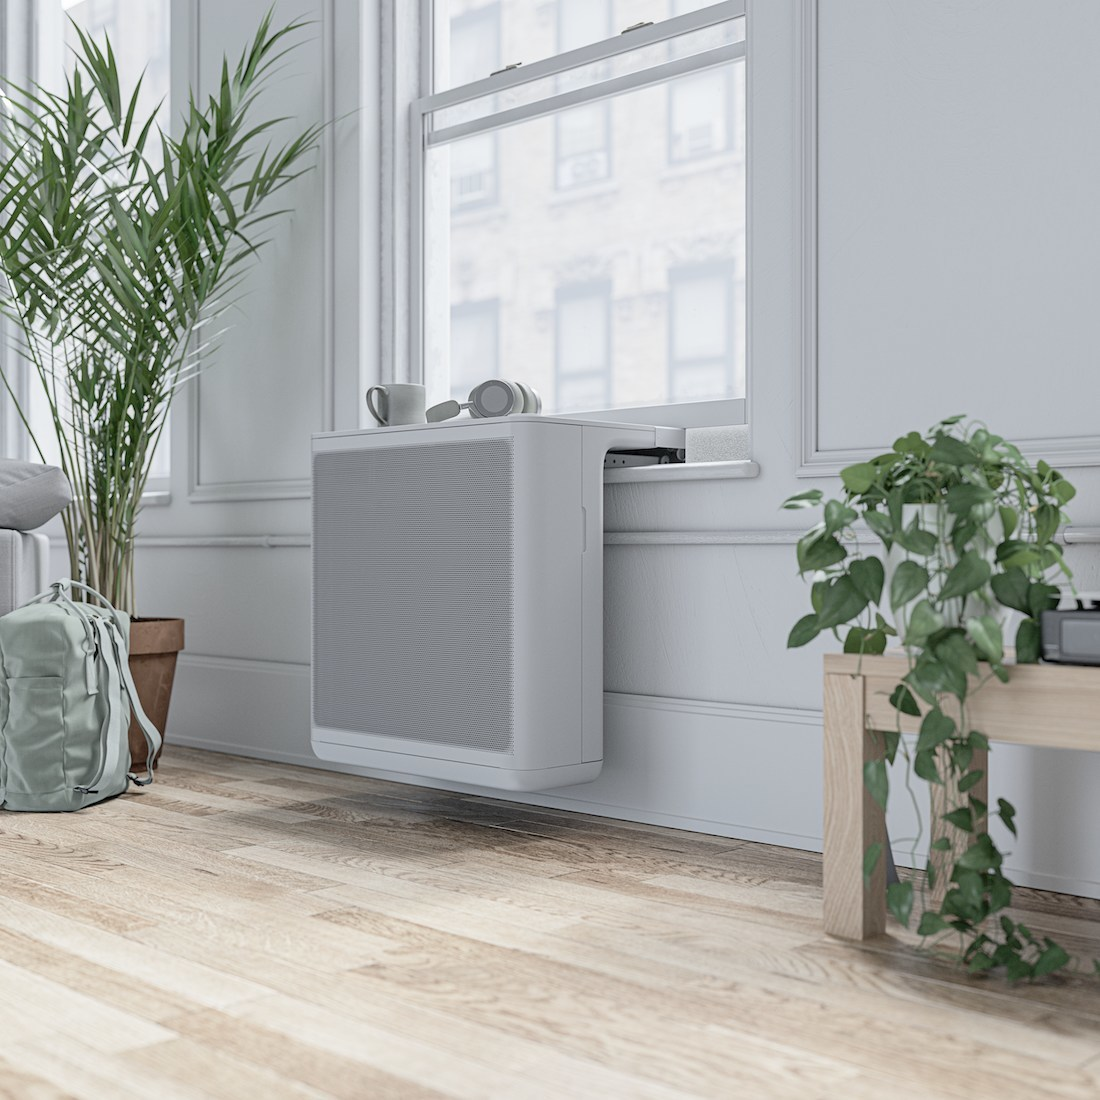 It's Time to Replace the Window AC. Introducing Gradient: Beautiful, Innovative, Climate-Friendly HVAC Solutions Designed for Consumer Needs